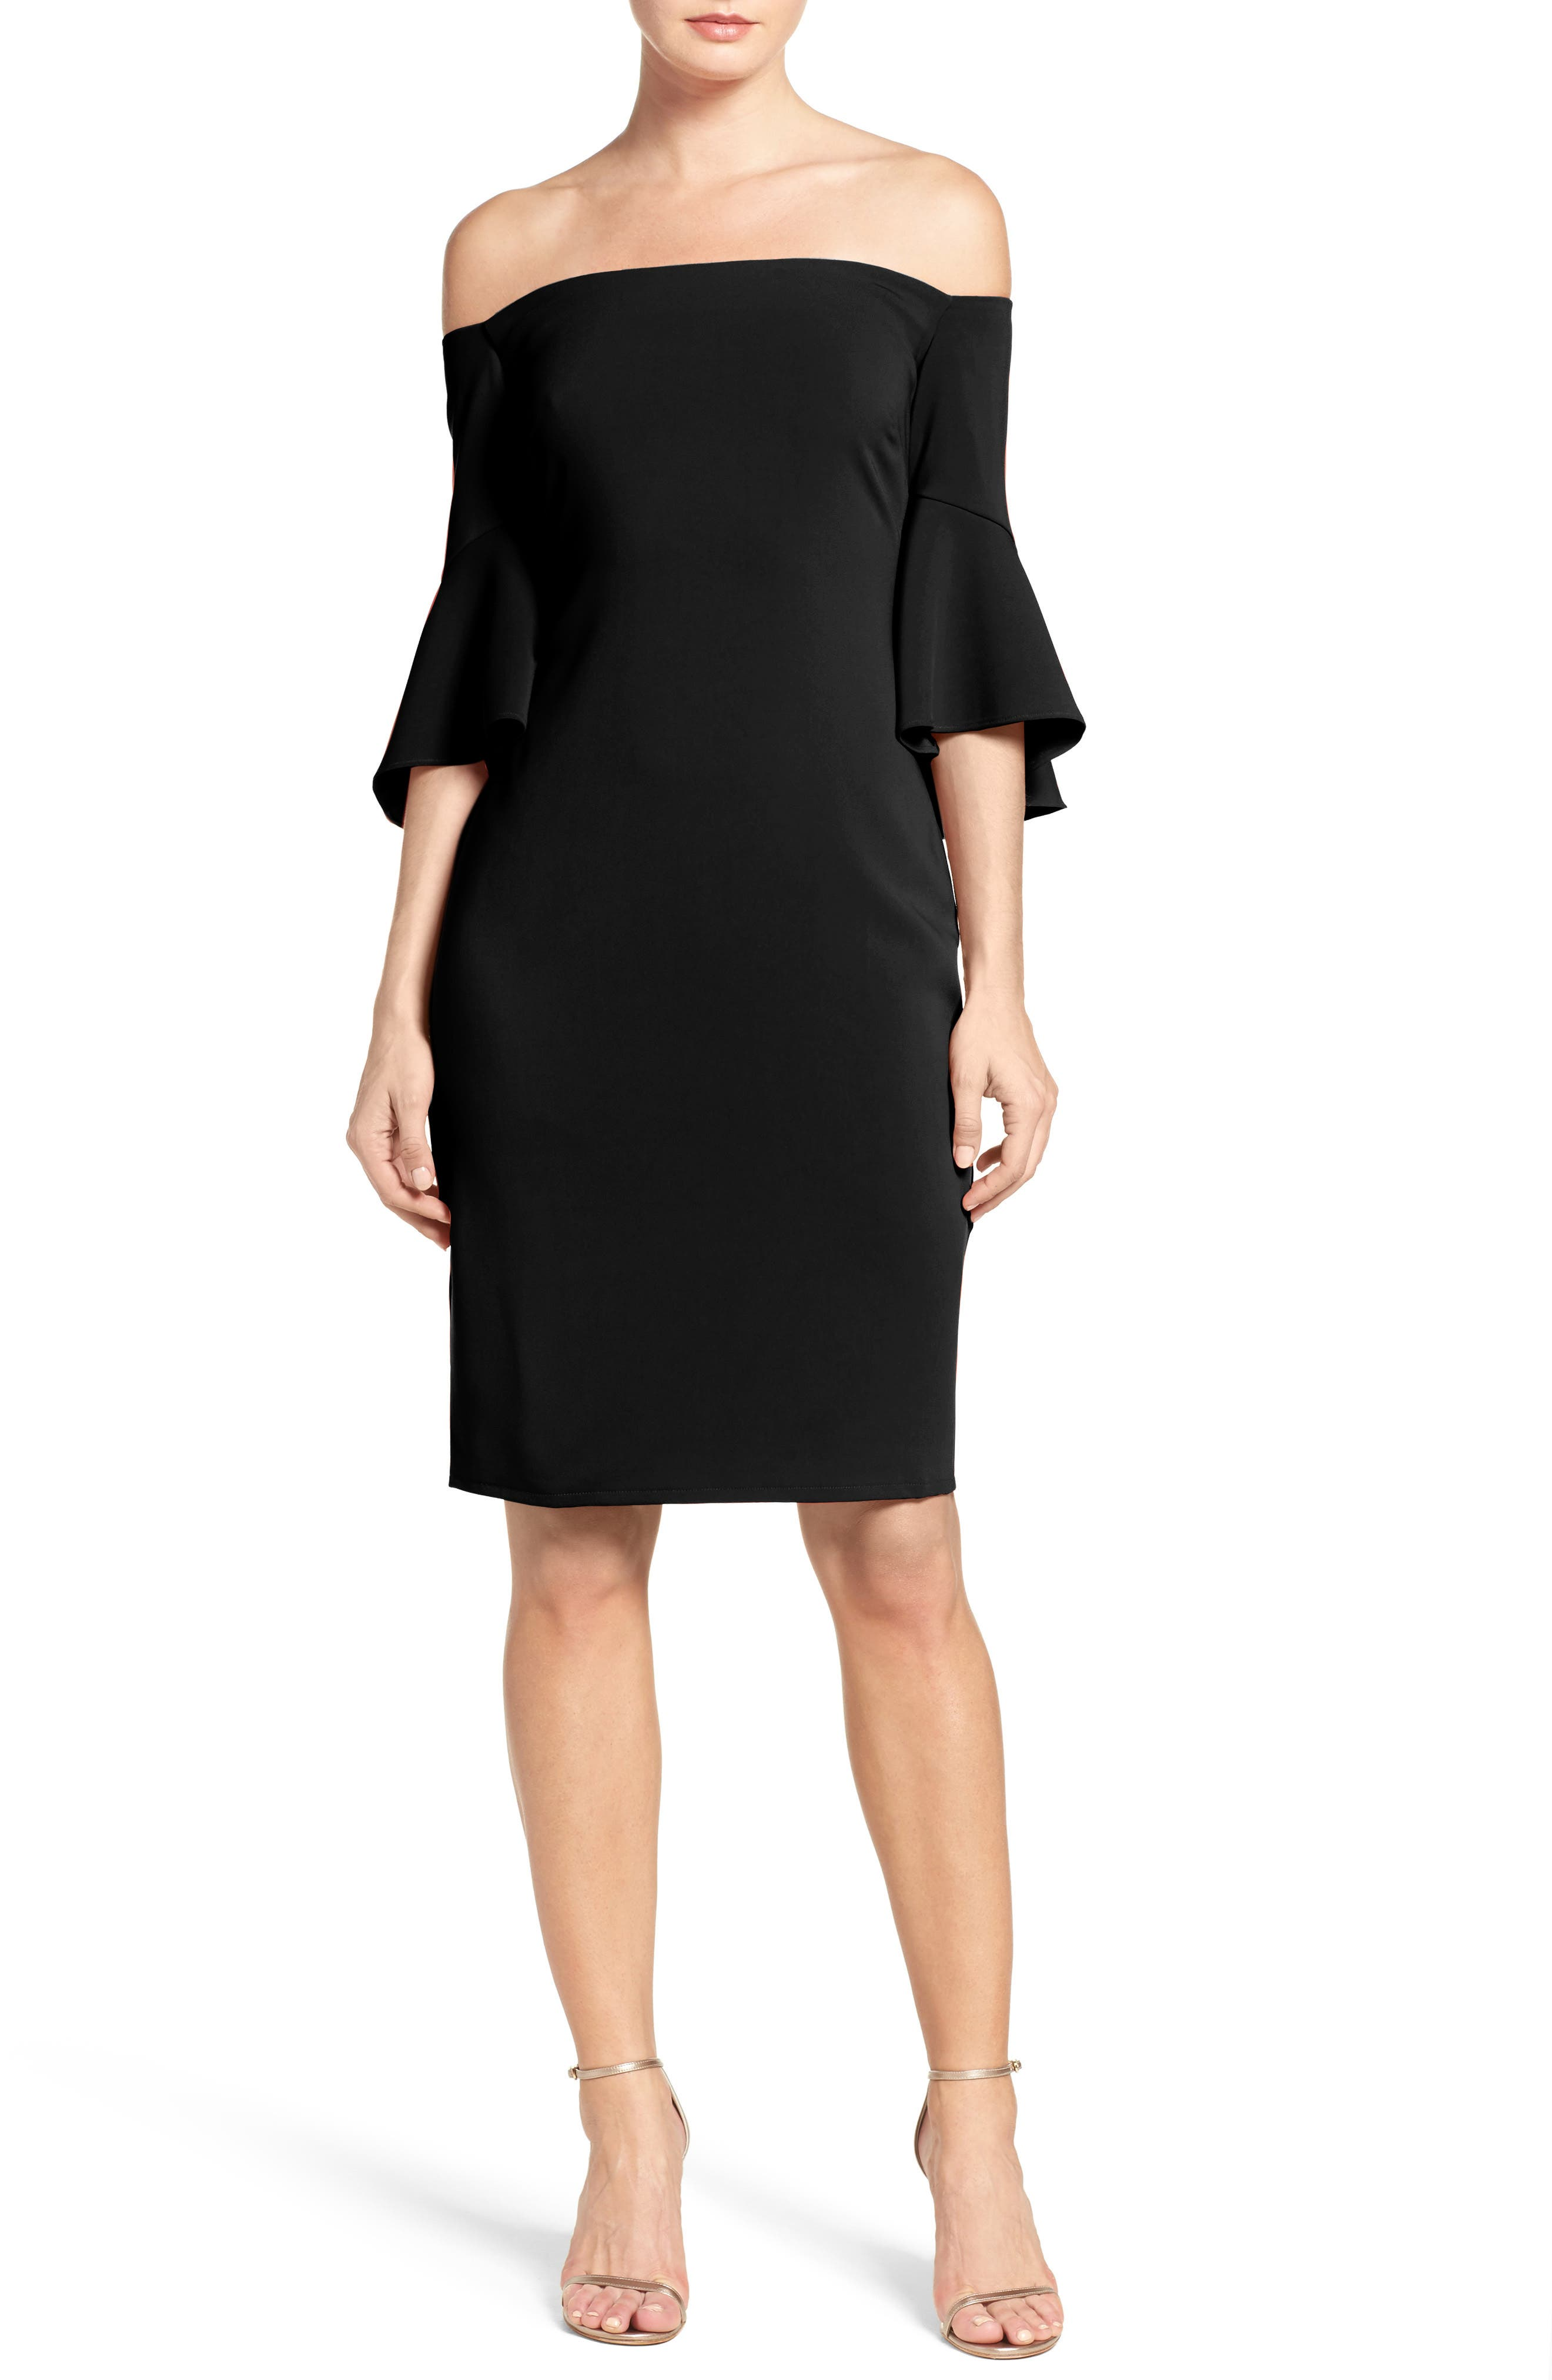 Alternate Image 1 Selected - Laundry by Shelli Segal Off the Shoulder Crepe Sheath Dress